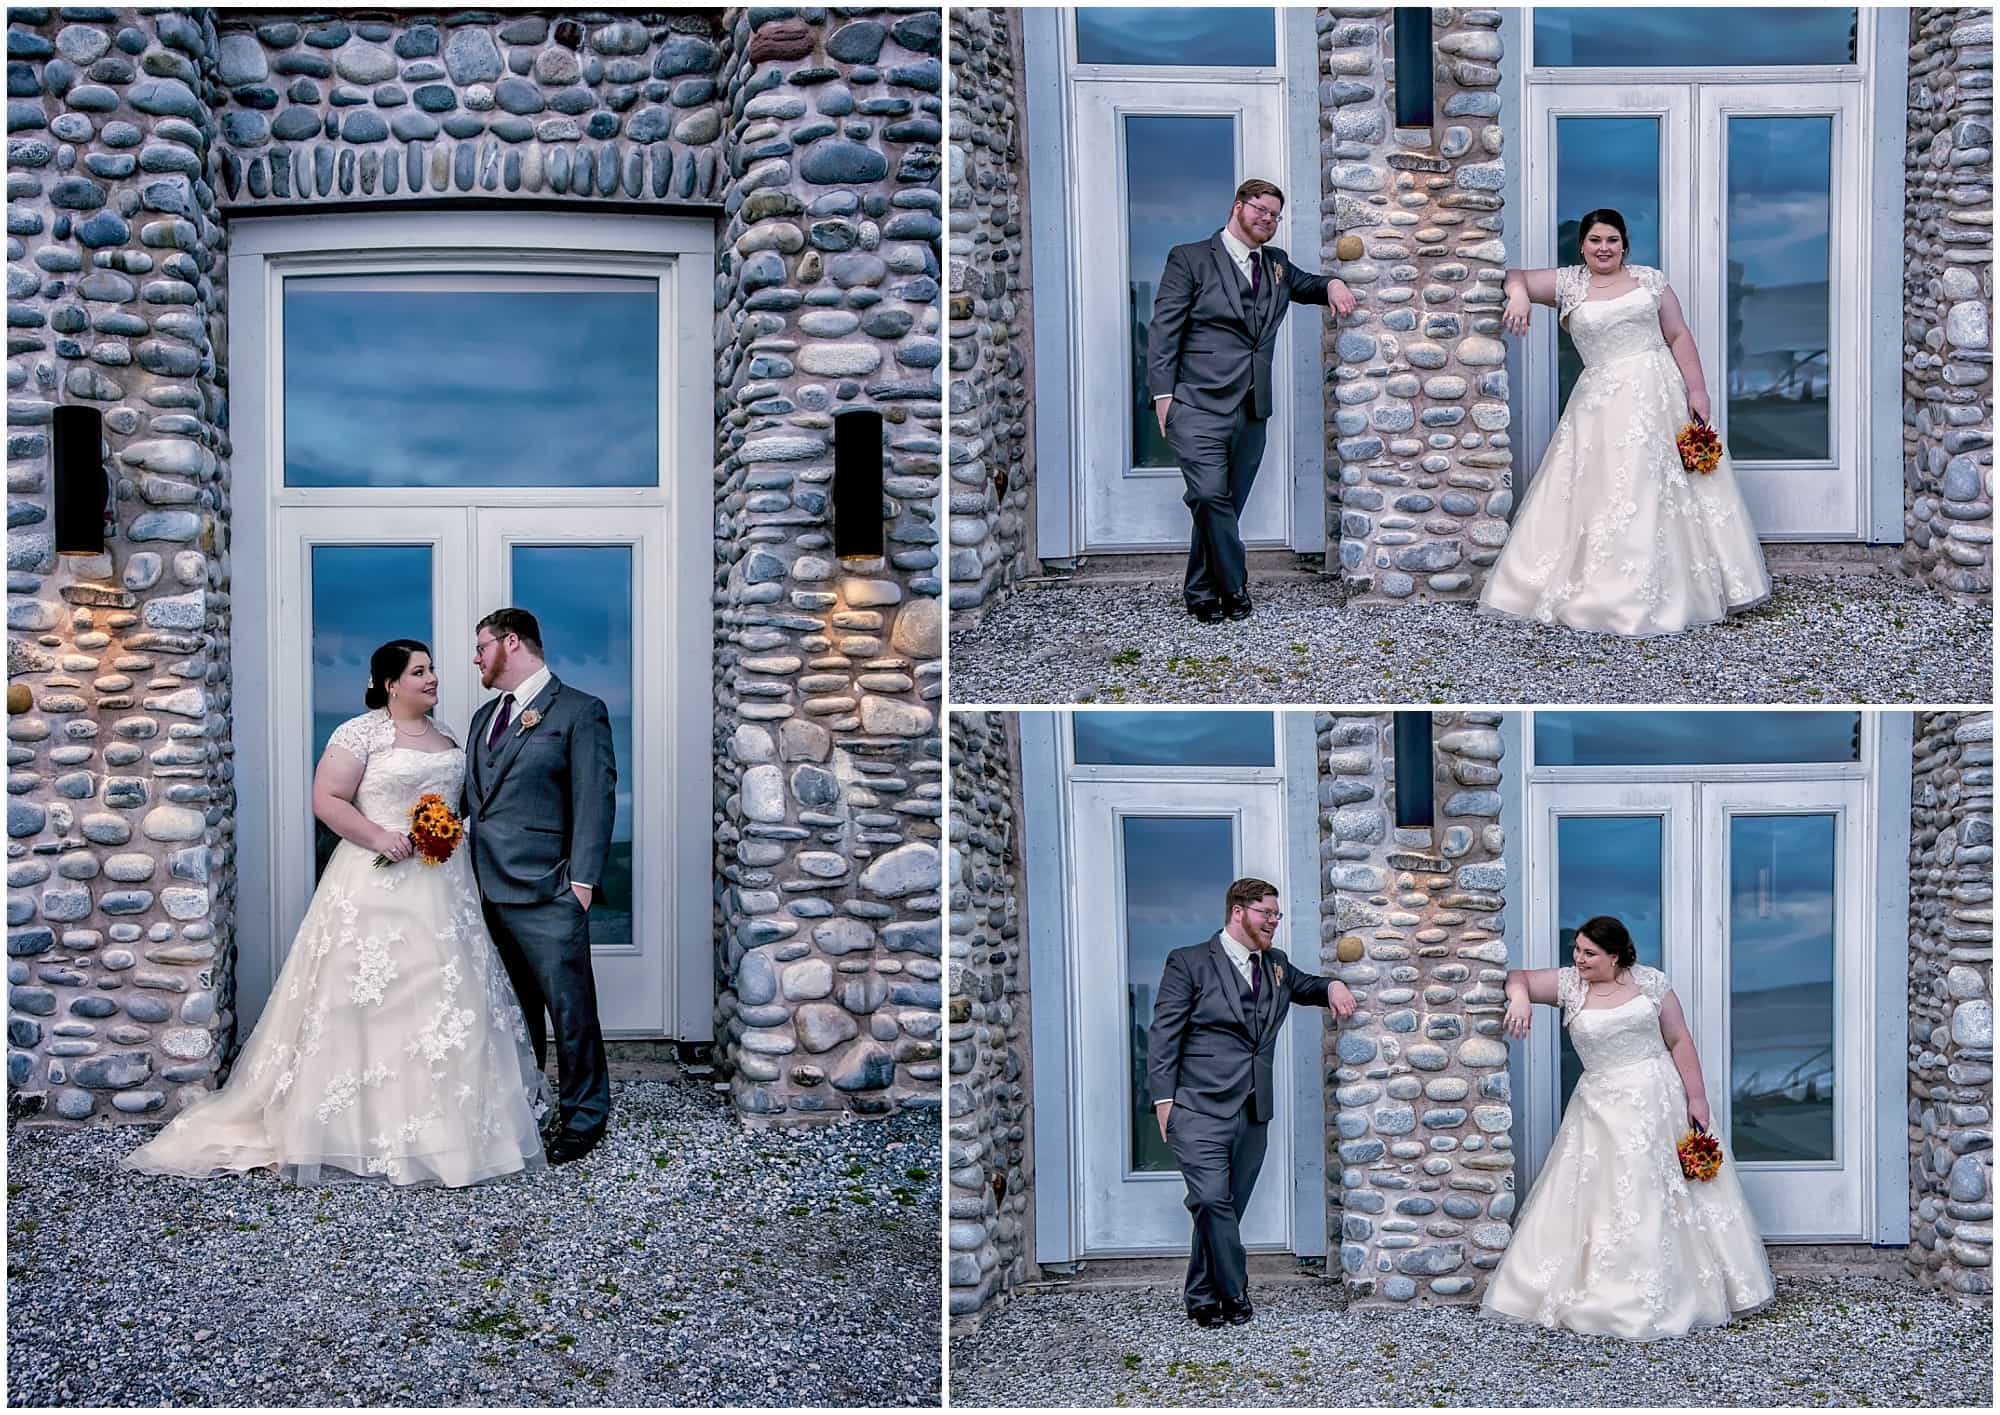 The bride and groom pose in front of stone work on the back of the Main Lodge at White Point for their wedding photos.